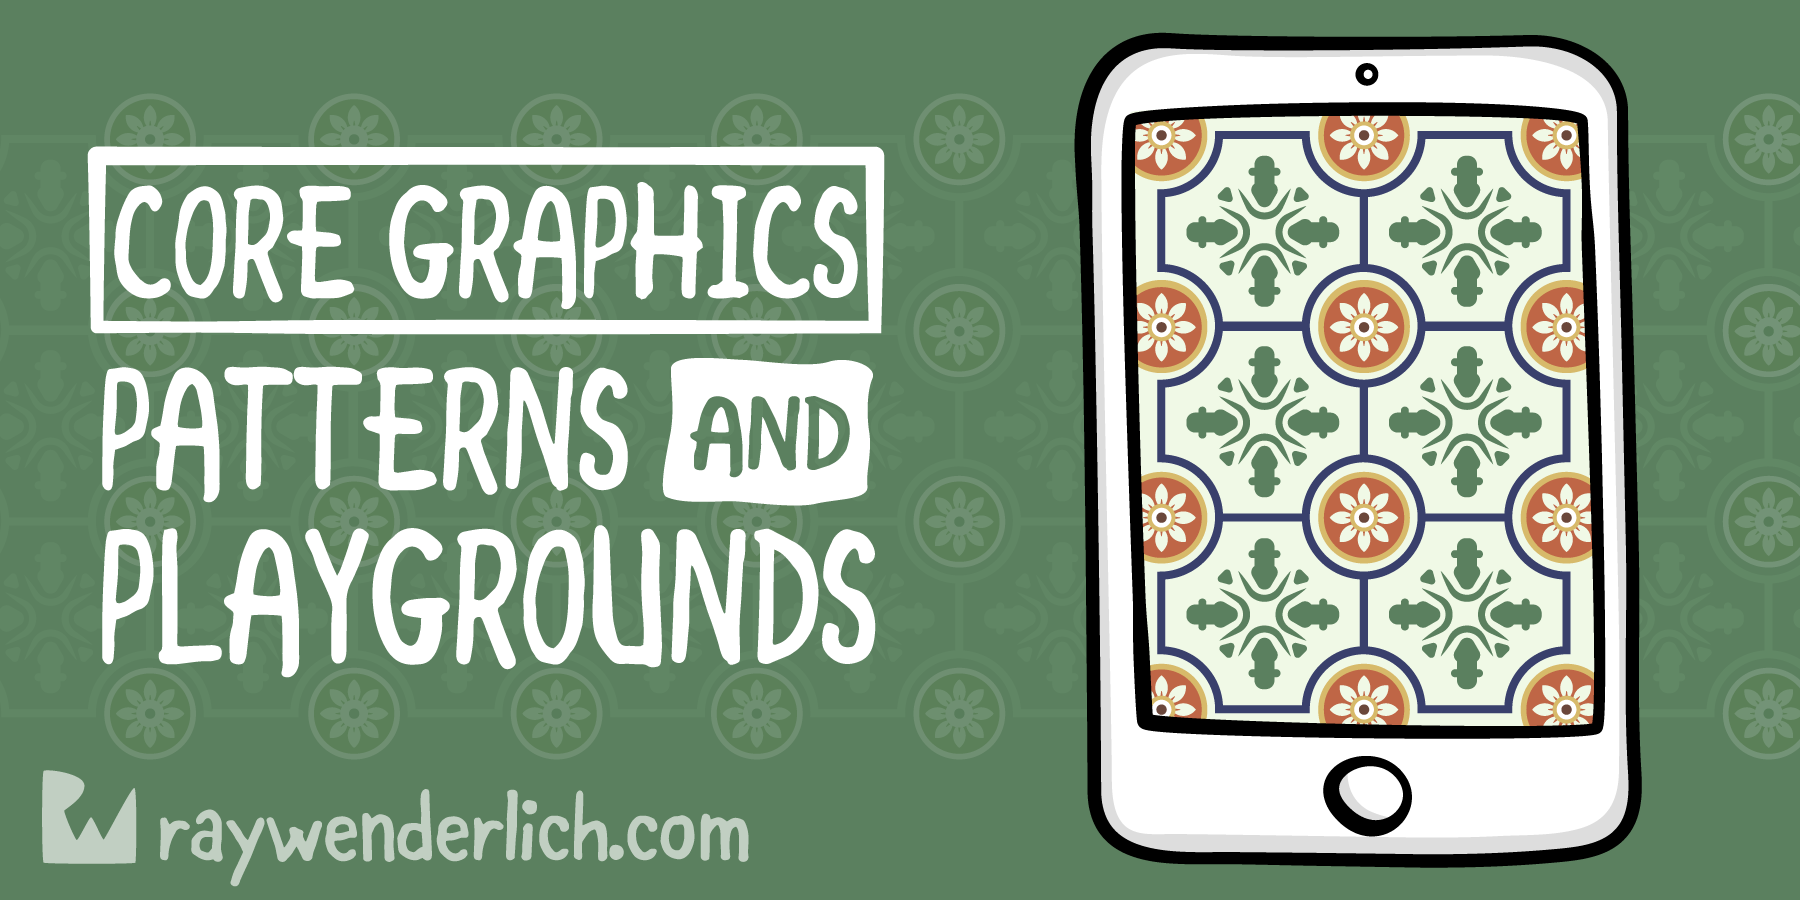 Core Graphics Tutorial: Patterns and Playgrounds [FREE]